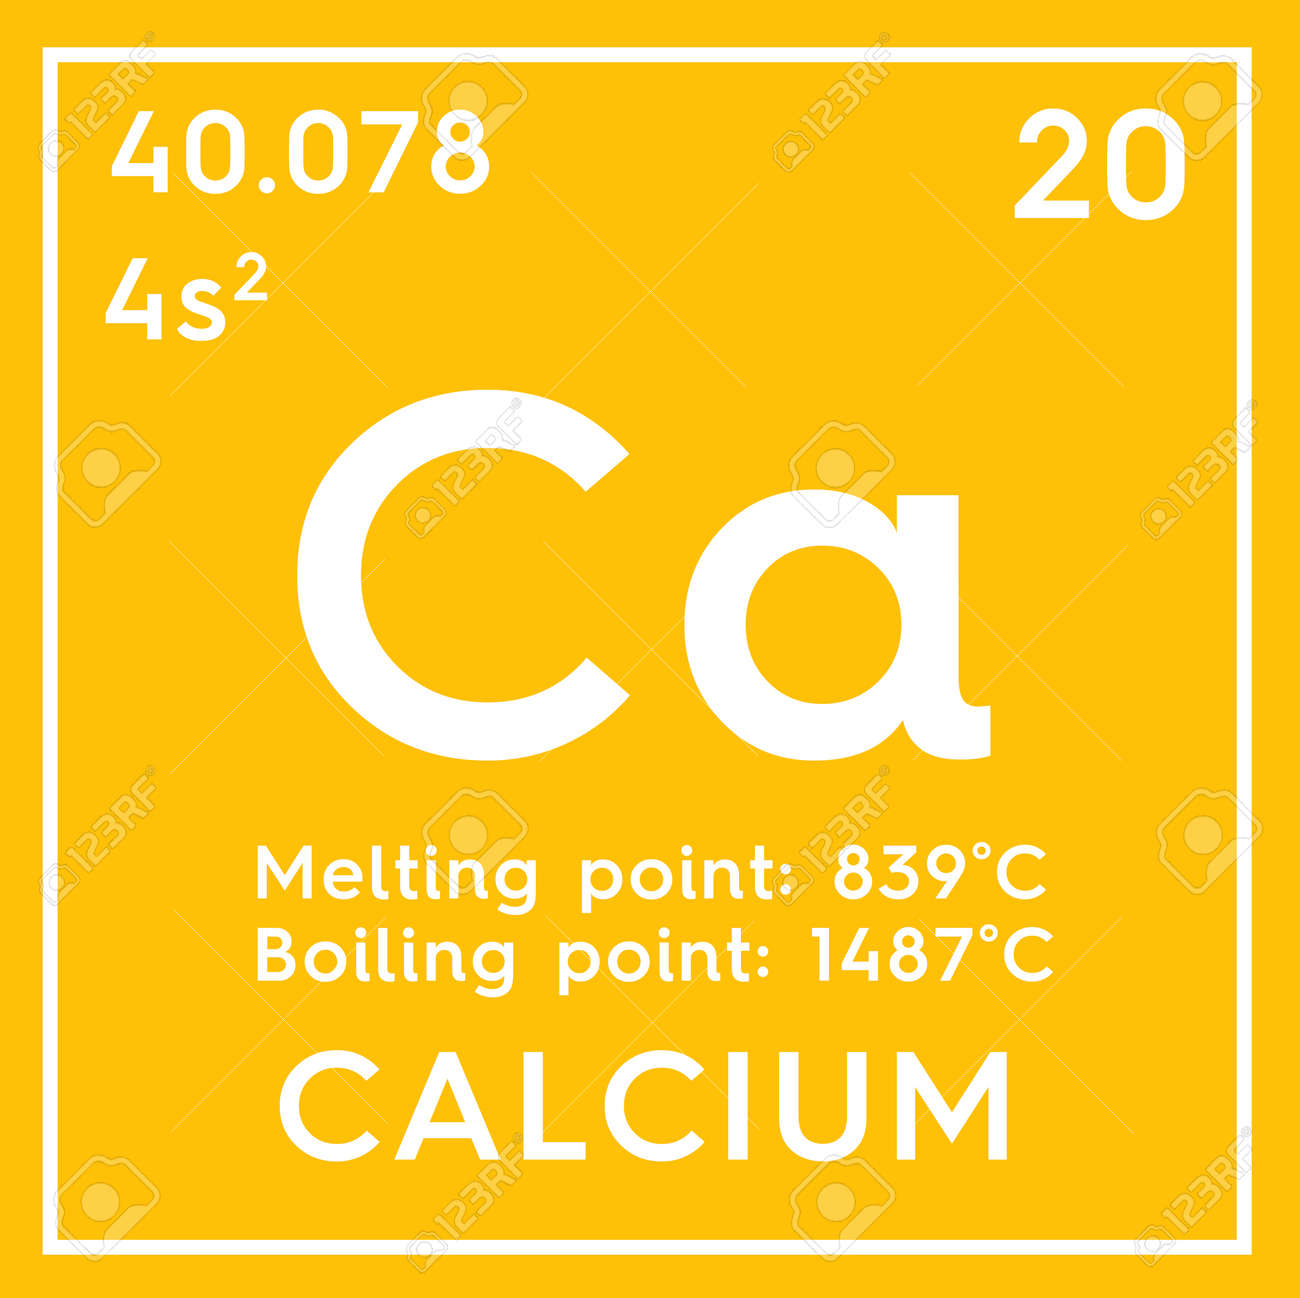 Calcium symbol periodic table best table 2018 calcium symbol ca element of the periodic table zoomed stock photo urtaz Gallery